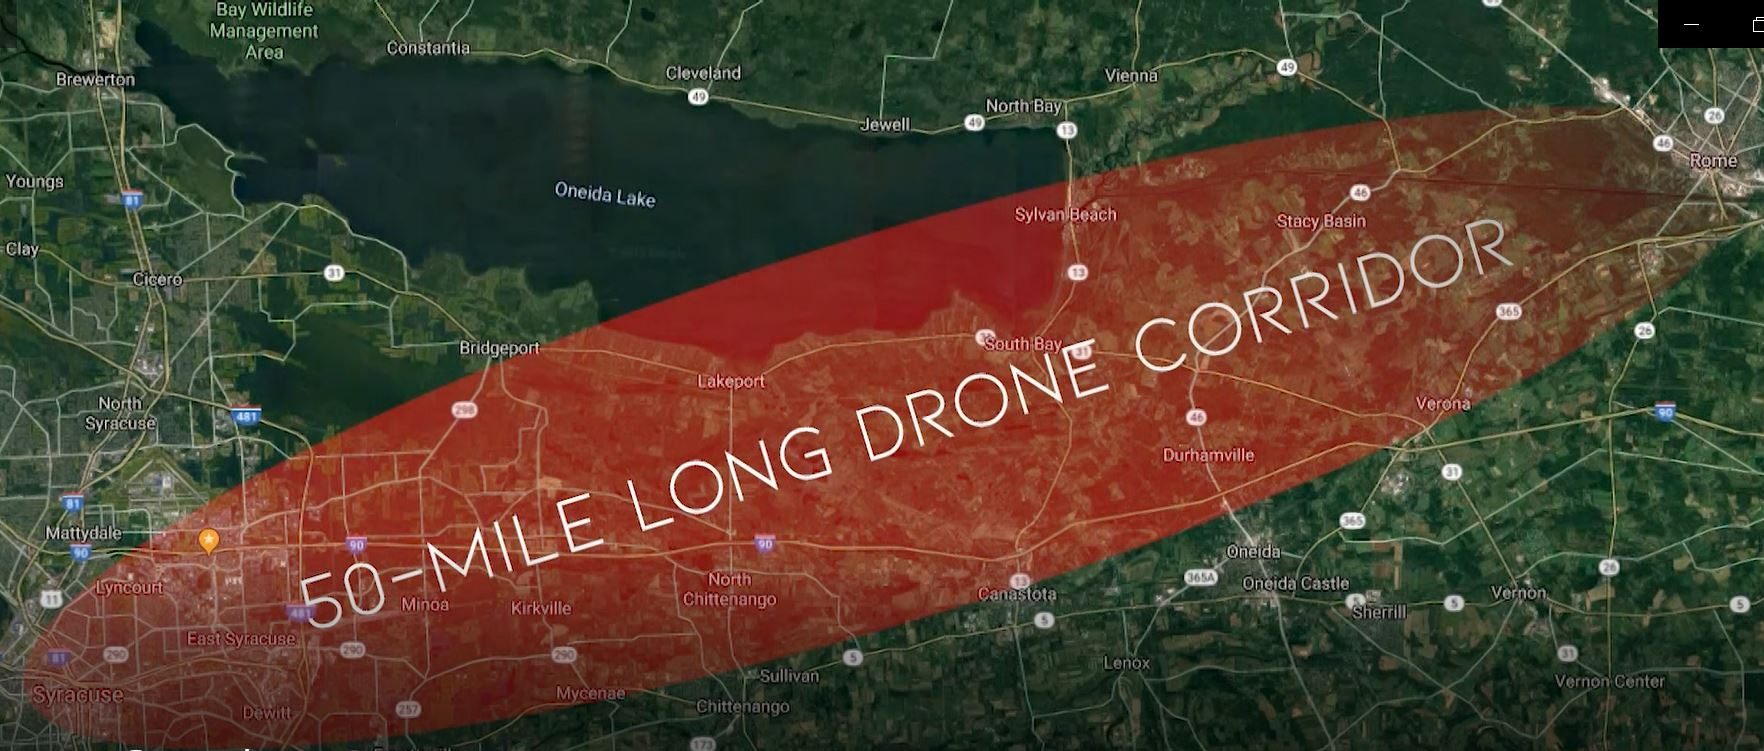 Drones over Central NY: 50-mile test corridor to open for business soon (map)